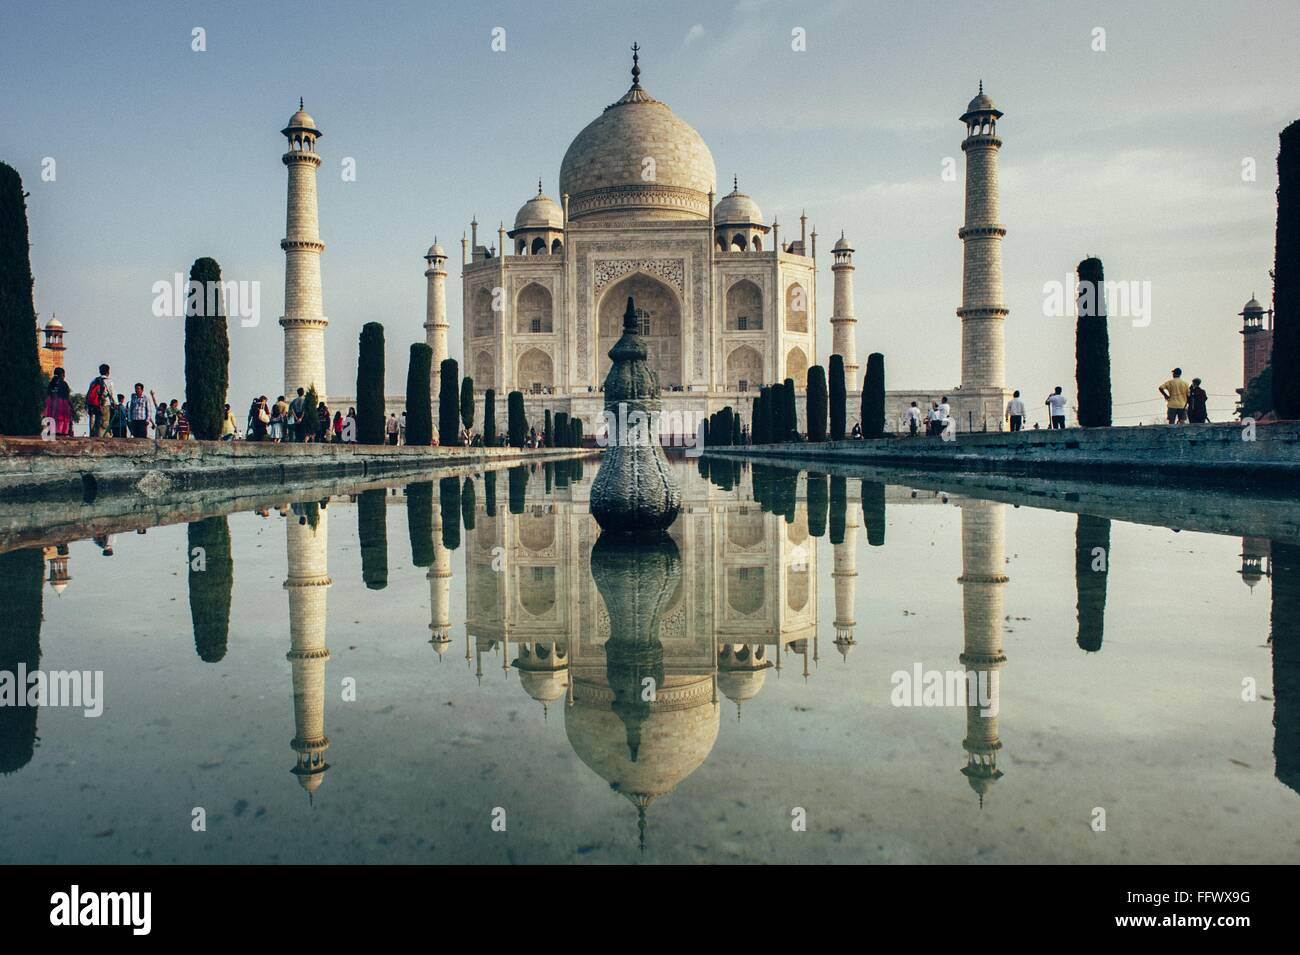 Reflection Of Taj Mahal Against Clear Sky - Stock Image